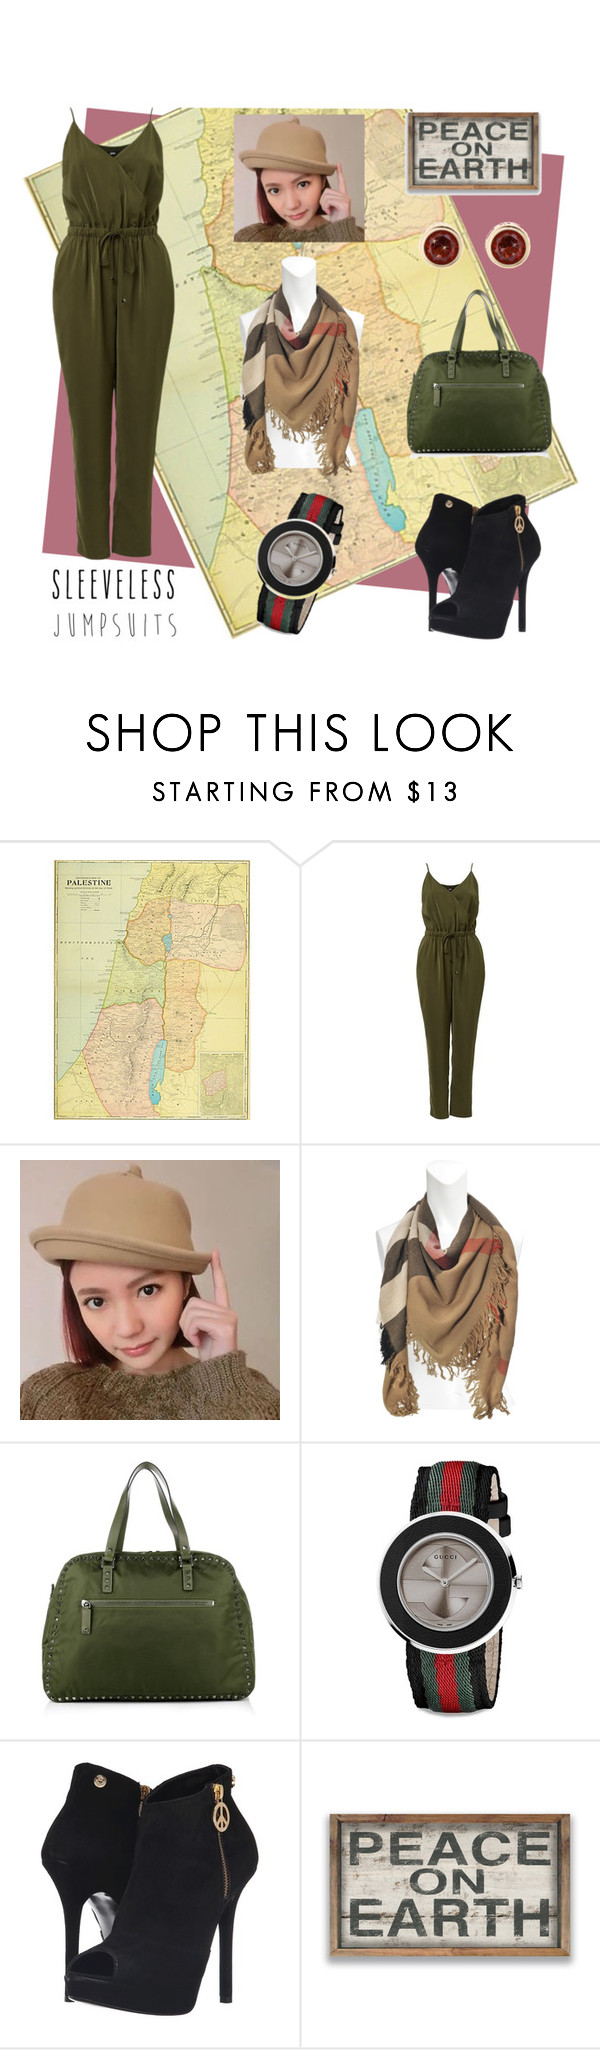 """""""One P-E-A-C-E for All"""" by nisak-tf ❤ liked on Polyvore featuring Burberry, Valentino, Gucci, Love Moschino, contest, peace, army, Palestine and sleevelessjumpsuits"""